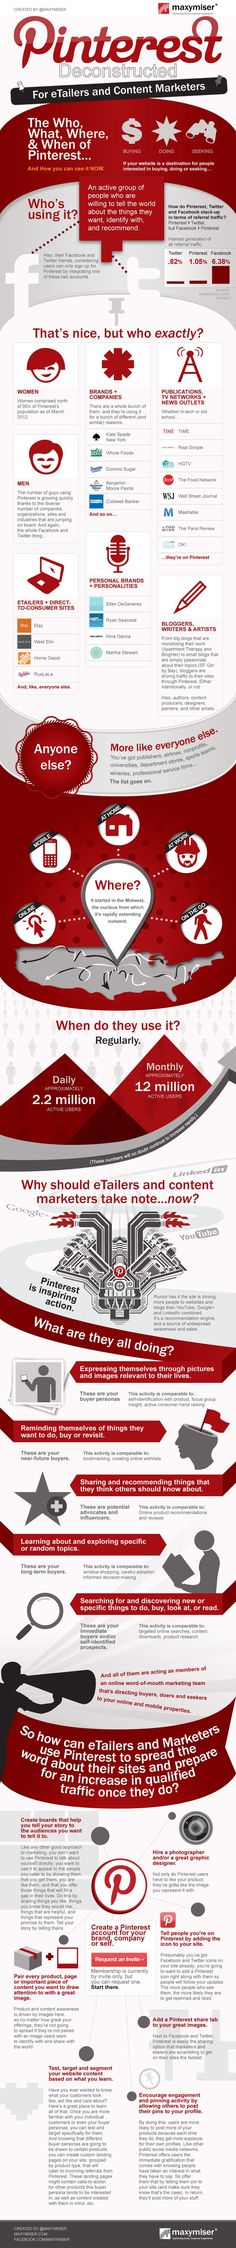 How Pinterest Can Turn Your Brand Red-Hot - Pinterest for eTailers & Content Marketers (maxymiser 2012)